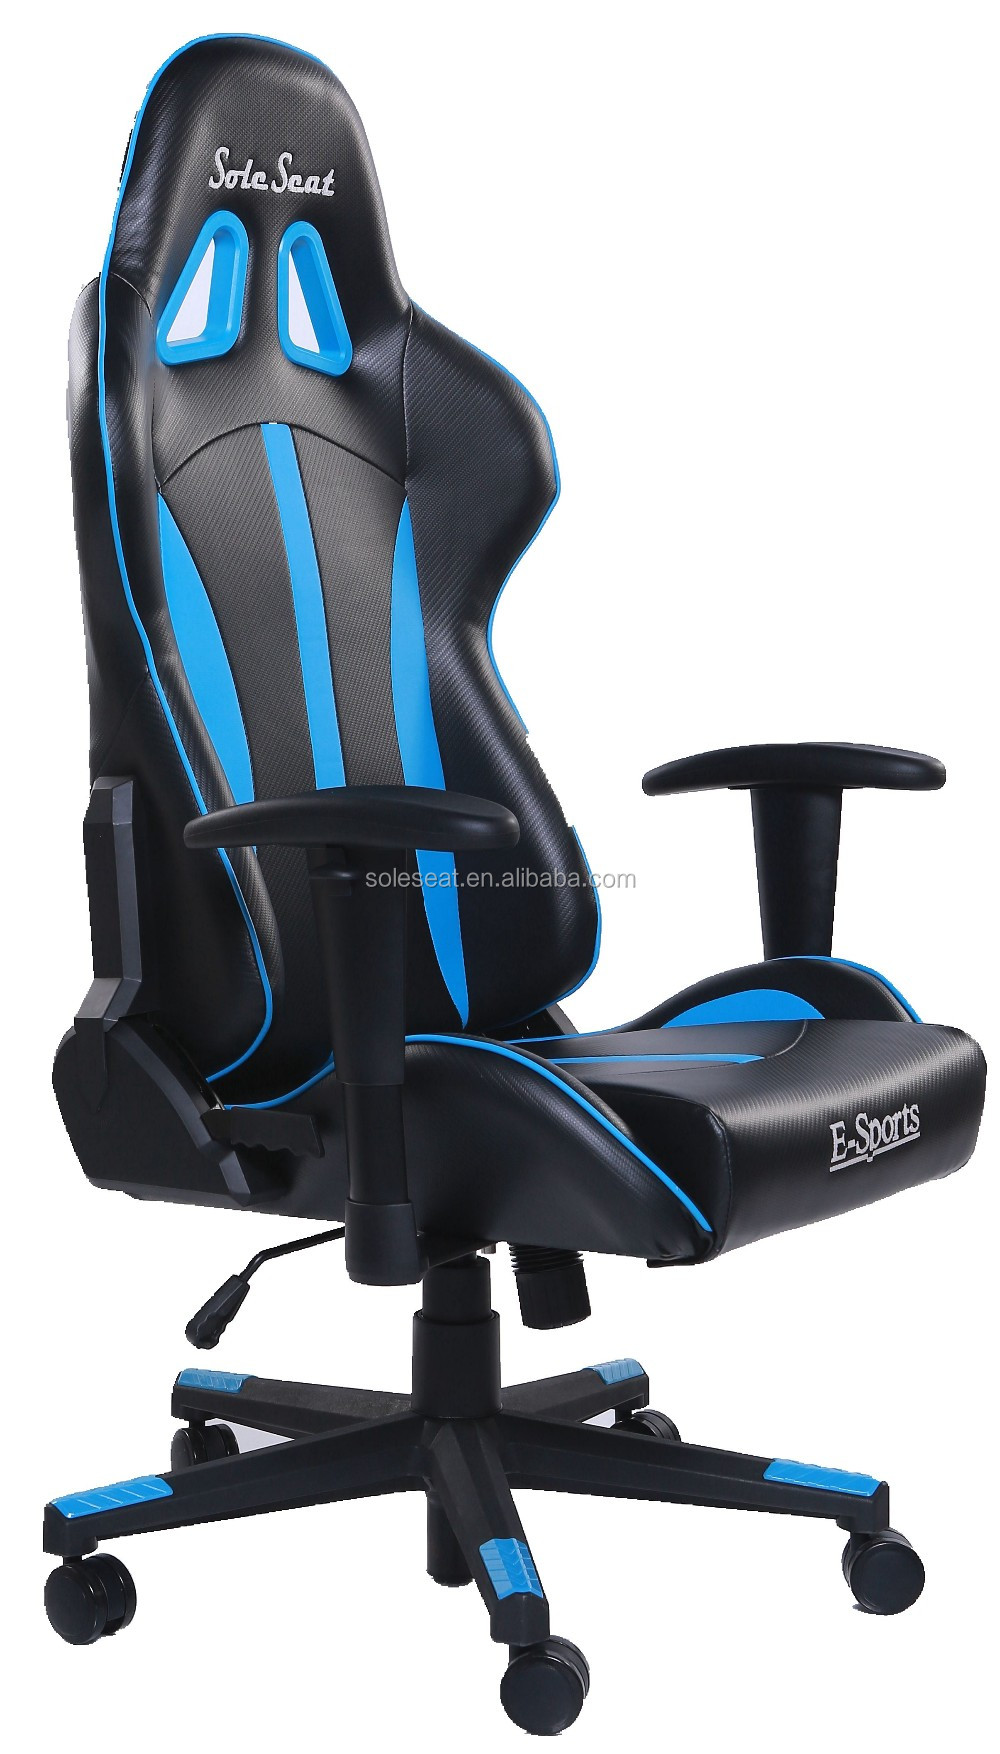 BLU&BLK classic leather Gaming Office Chair by China Online Shopping